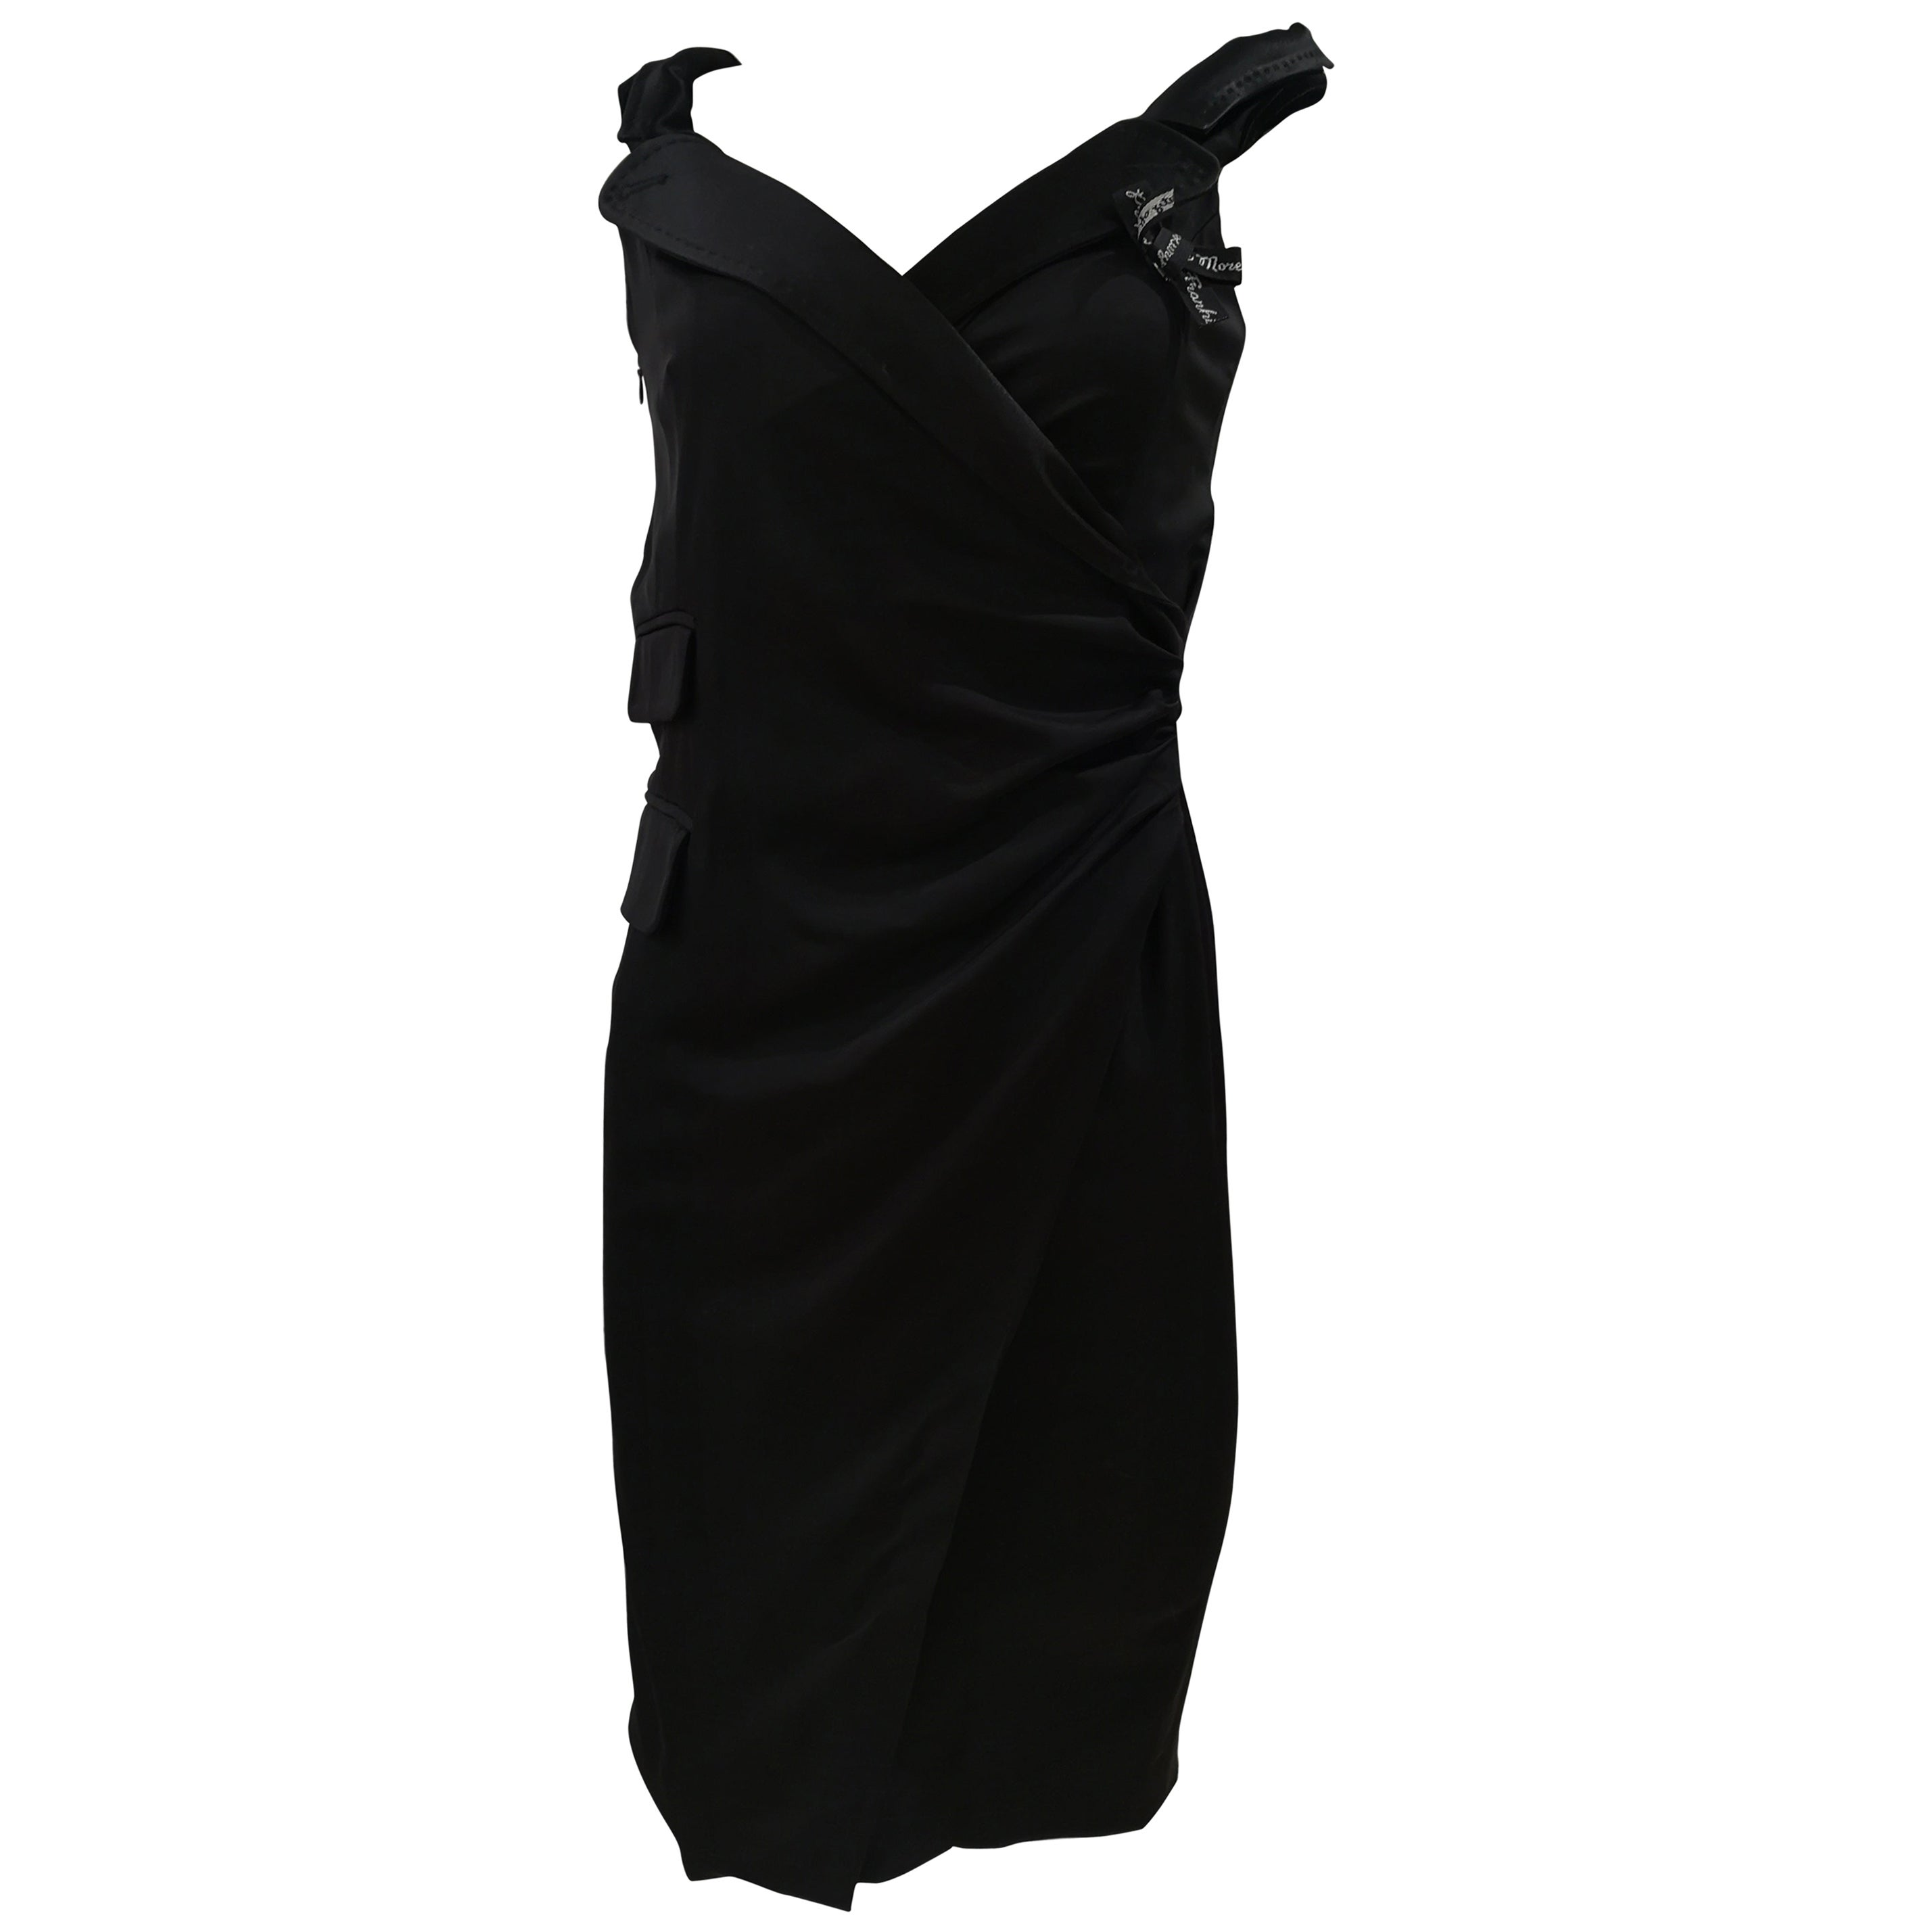 Frankie Morello black dress